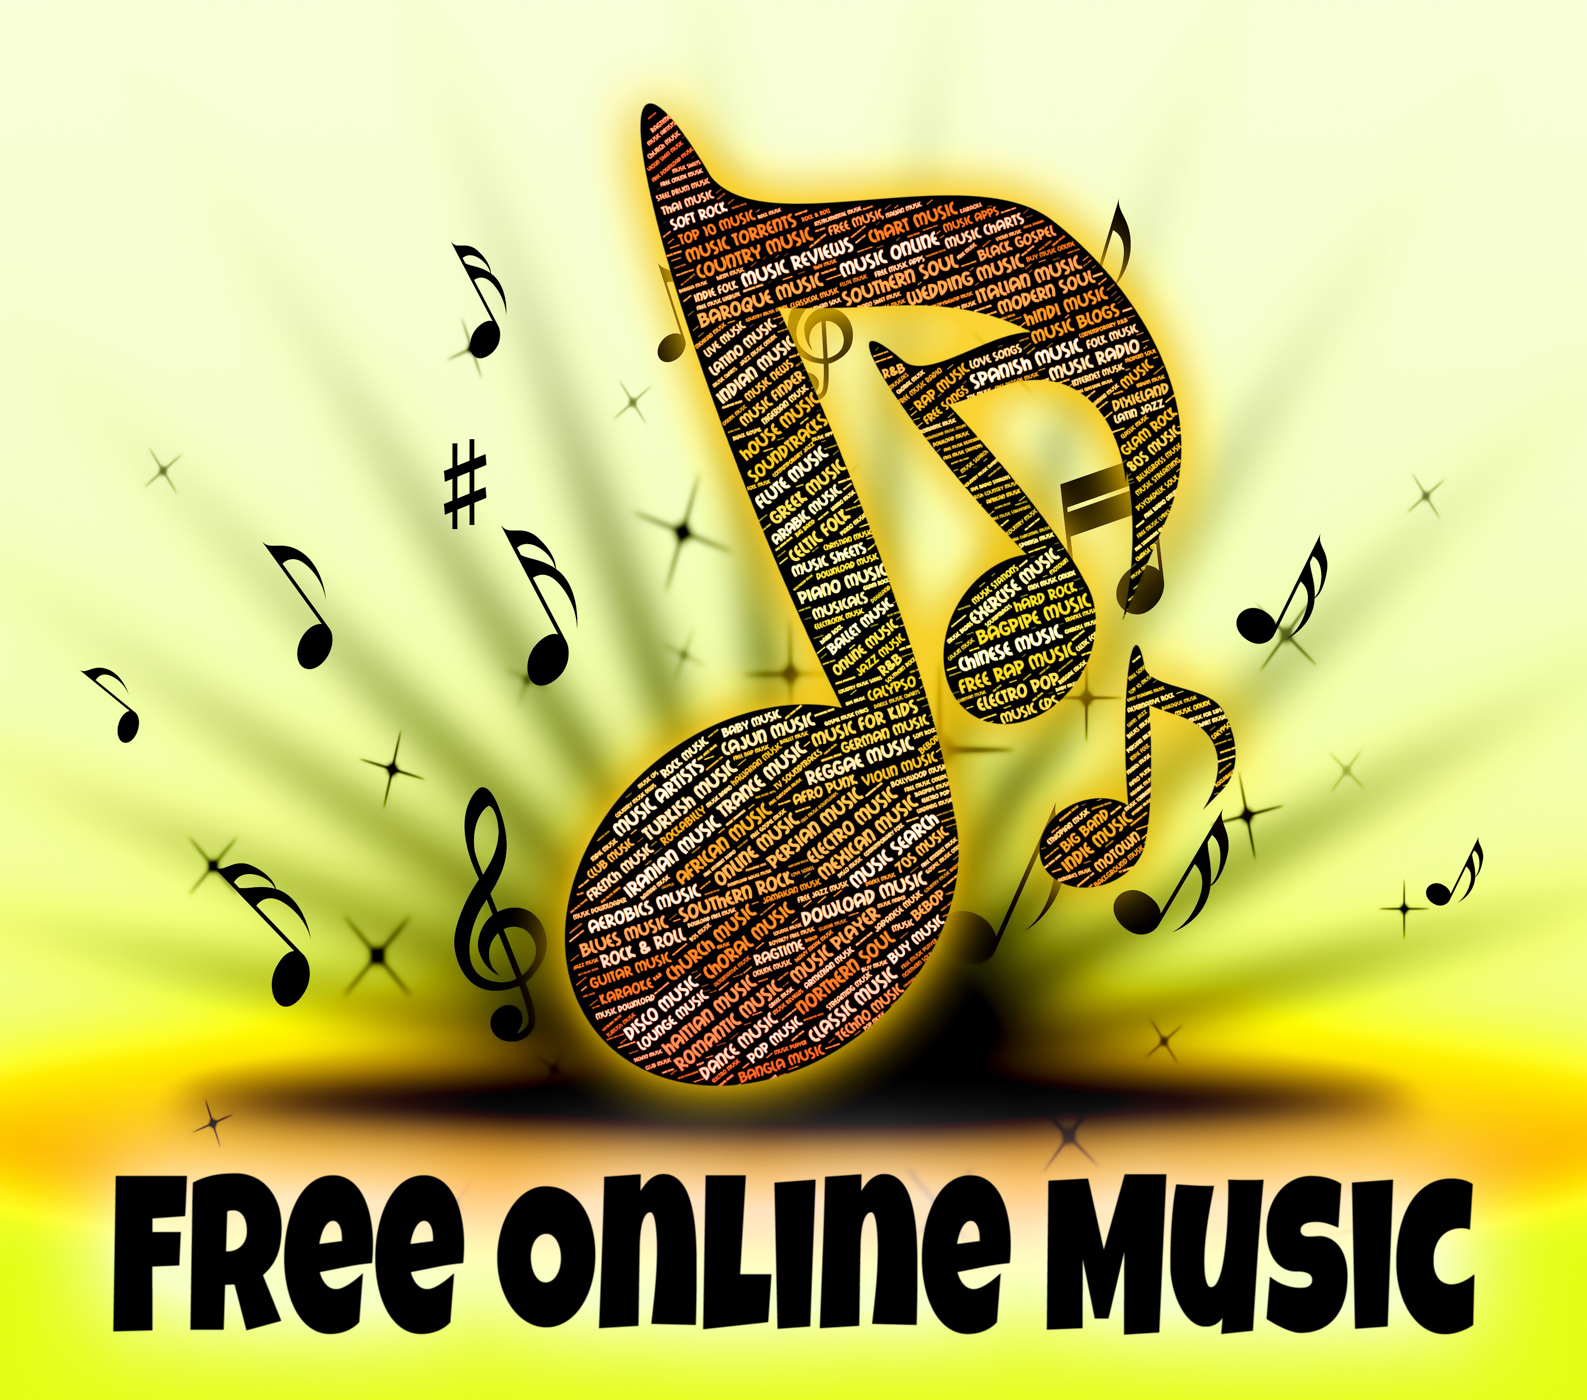 Free Online Music Represents For Nothing And Freebie, Acoustic, Network, Web, Tunes, HQ Photo